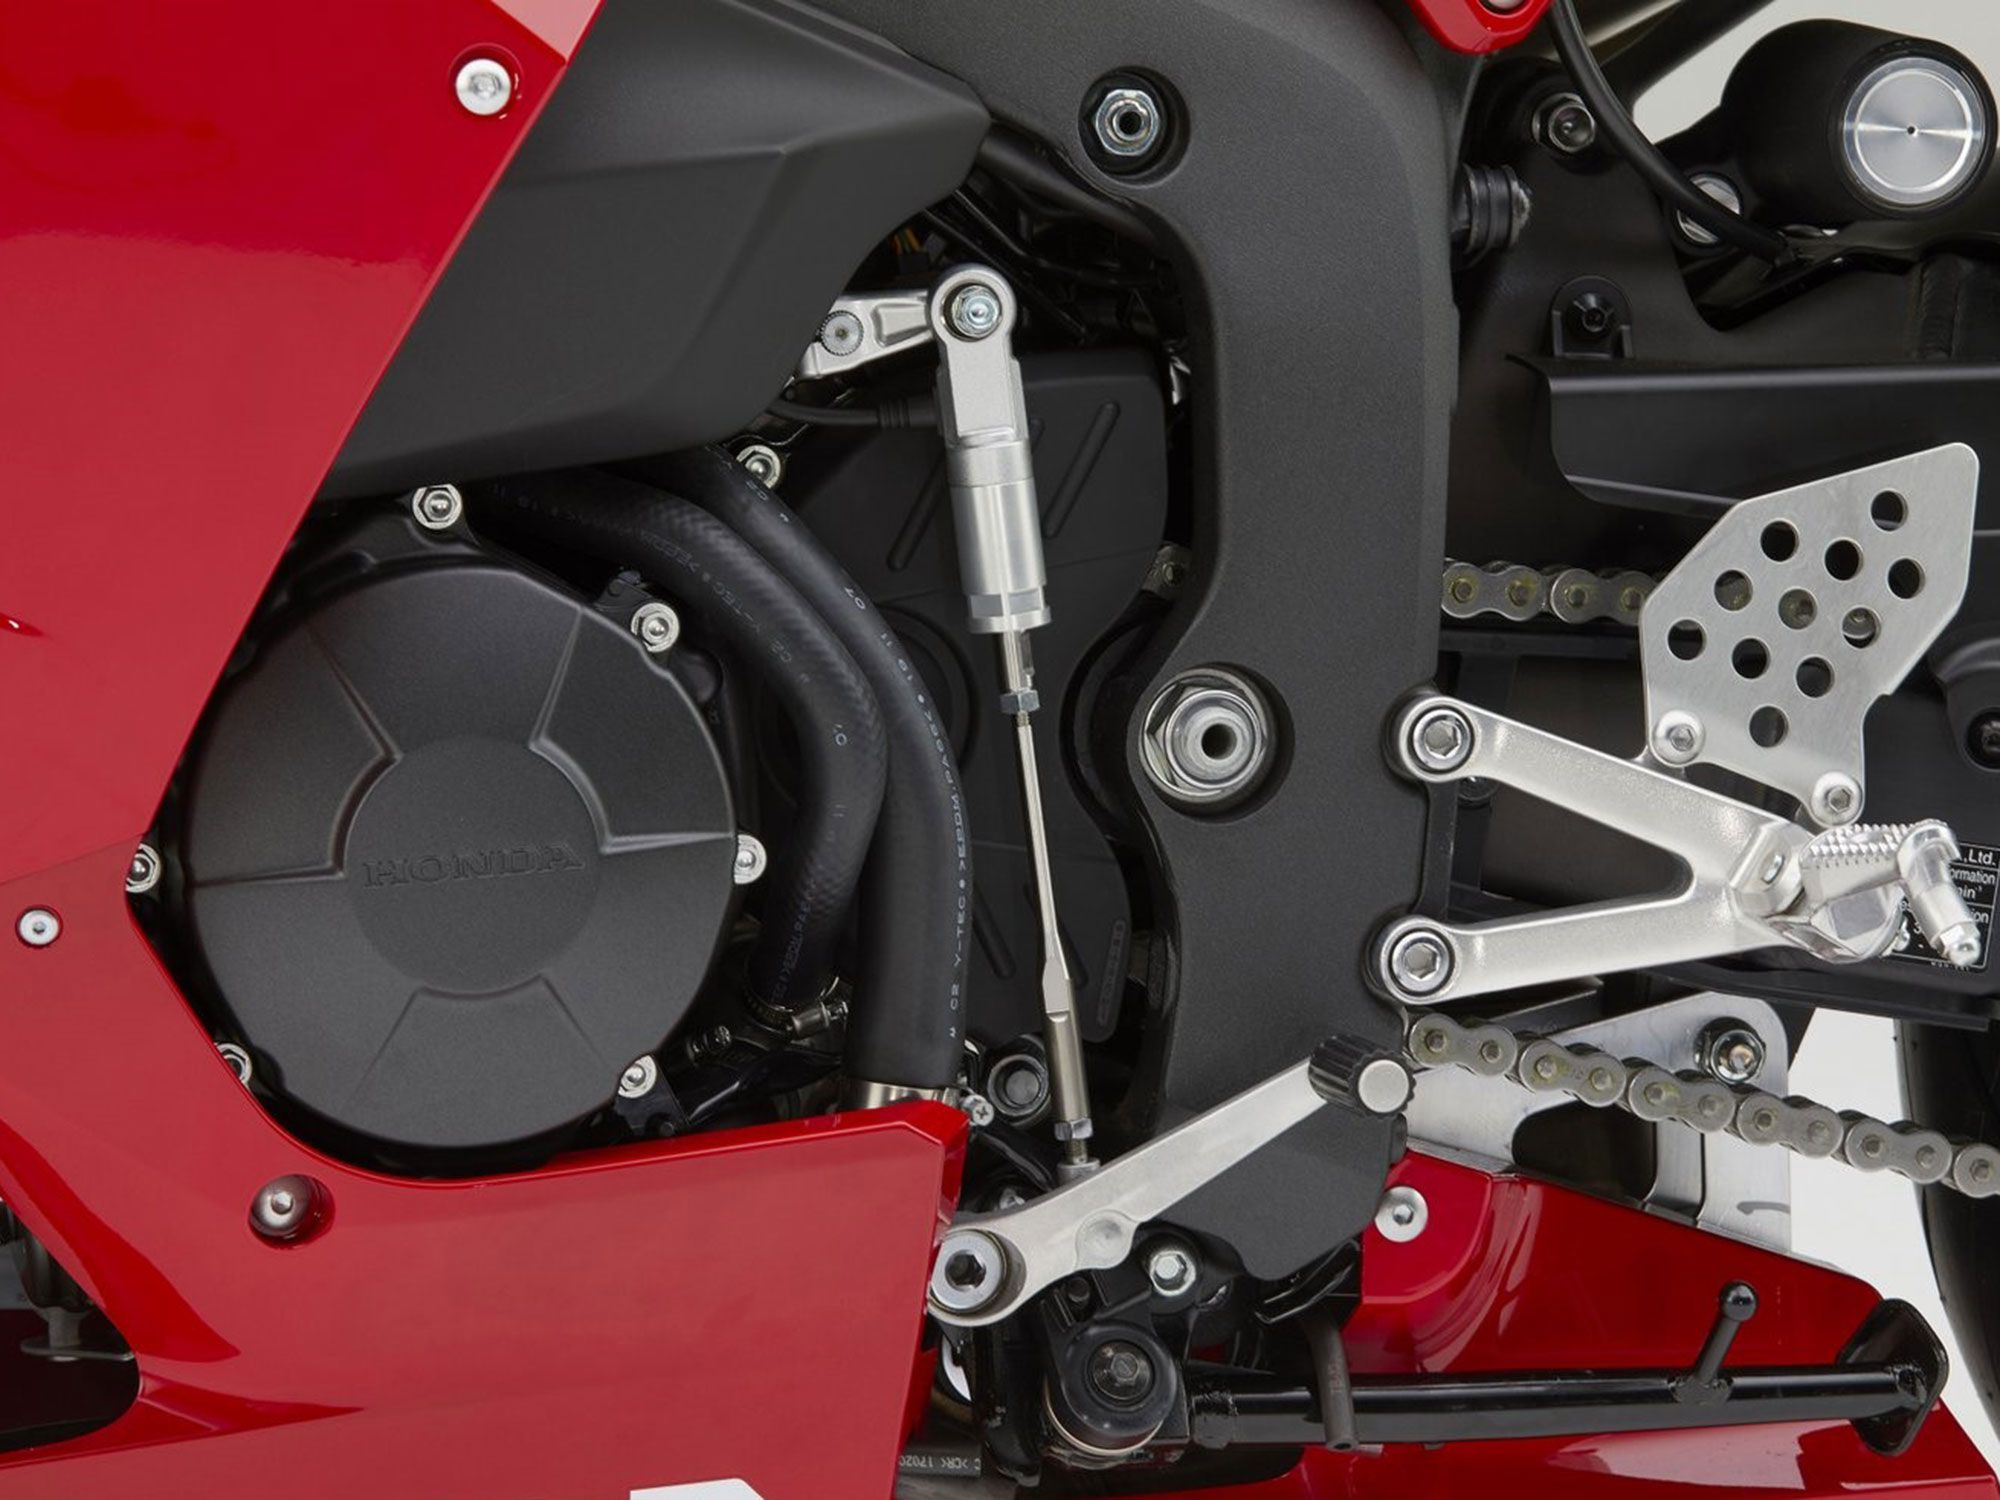 Although the 599cc engine now gets cleaner emissions to meet Japan's latest rules, there's no change to bore and stroke, and performance gains appear minimal at best.